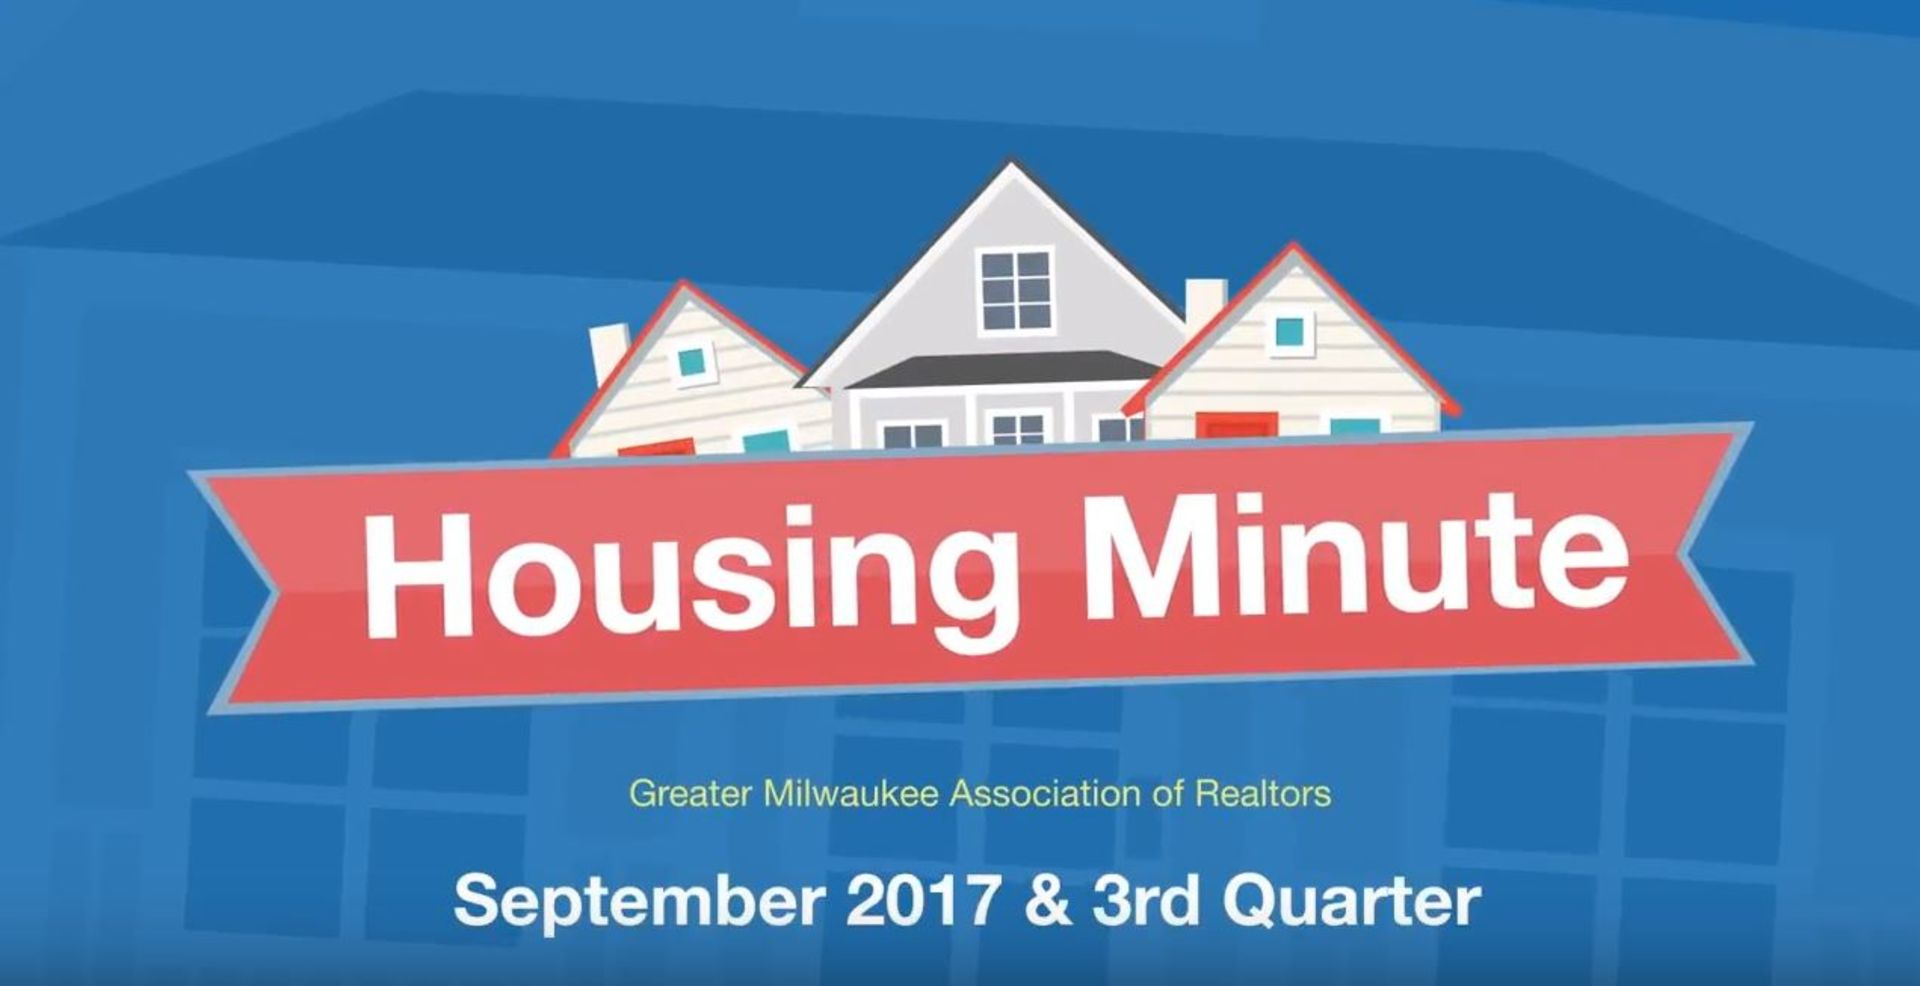 September Housings Stats for the Greater Milwaukee Area